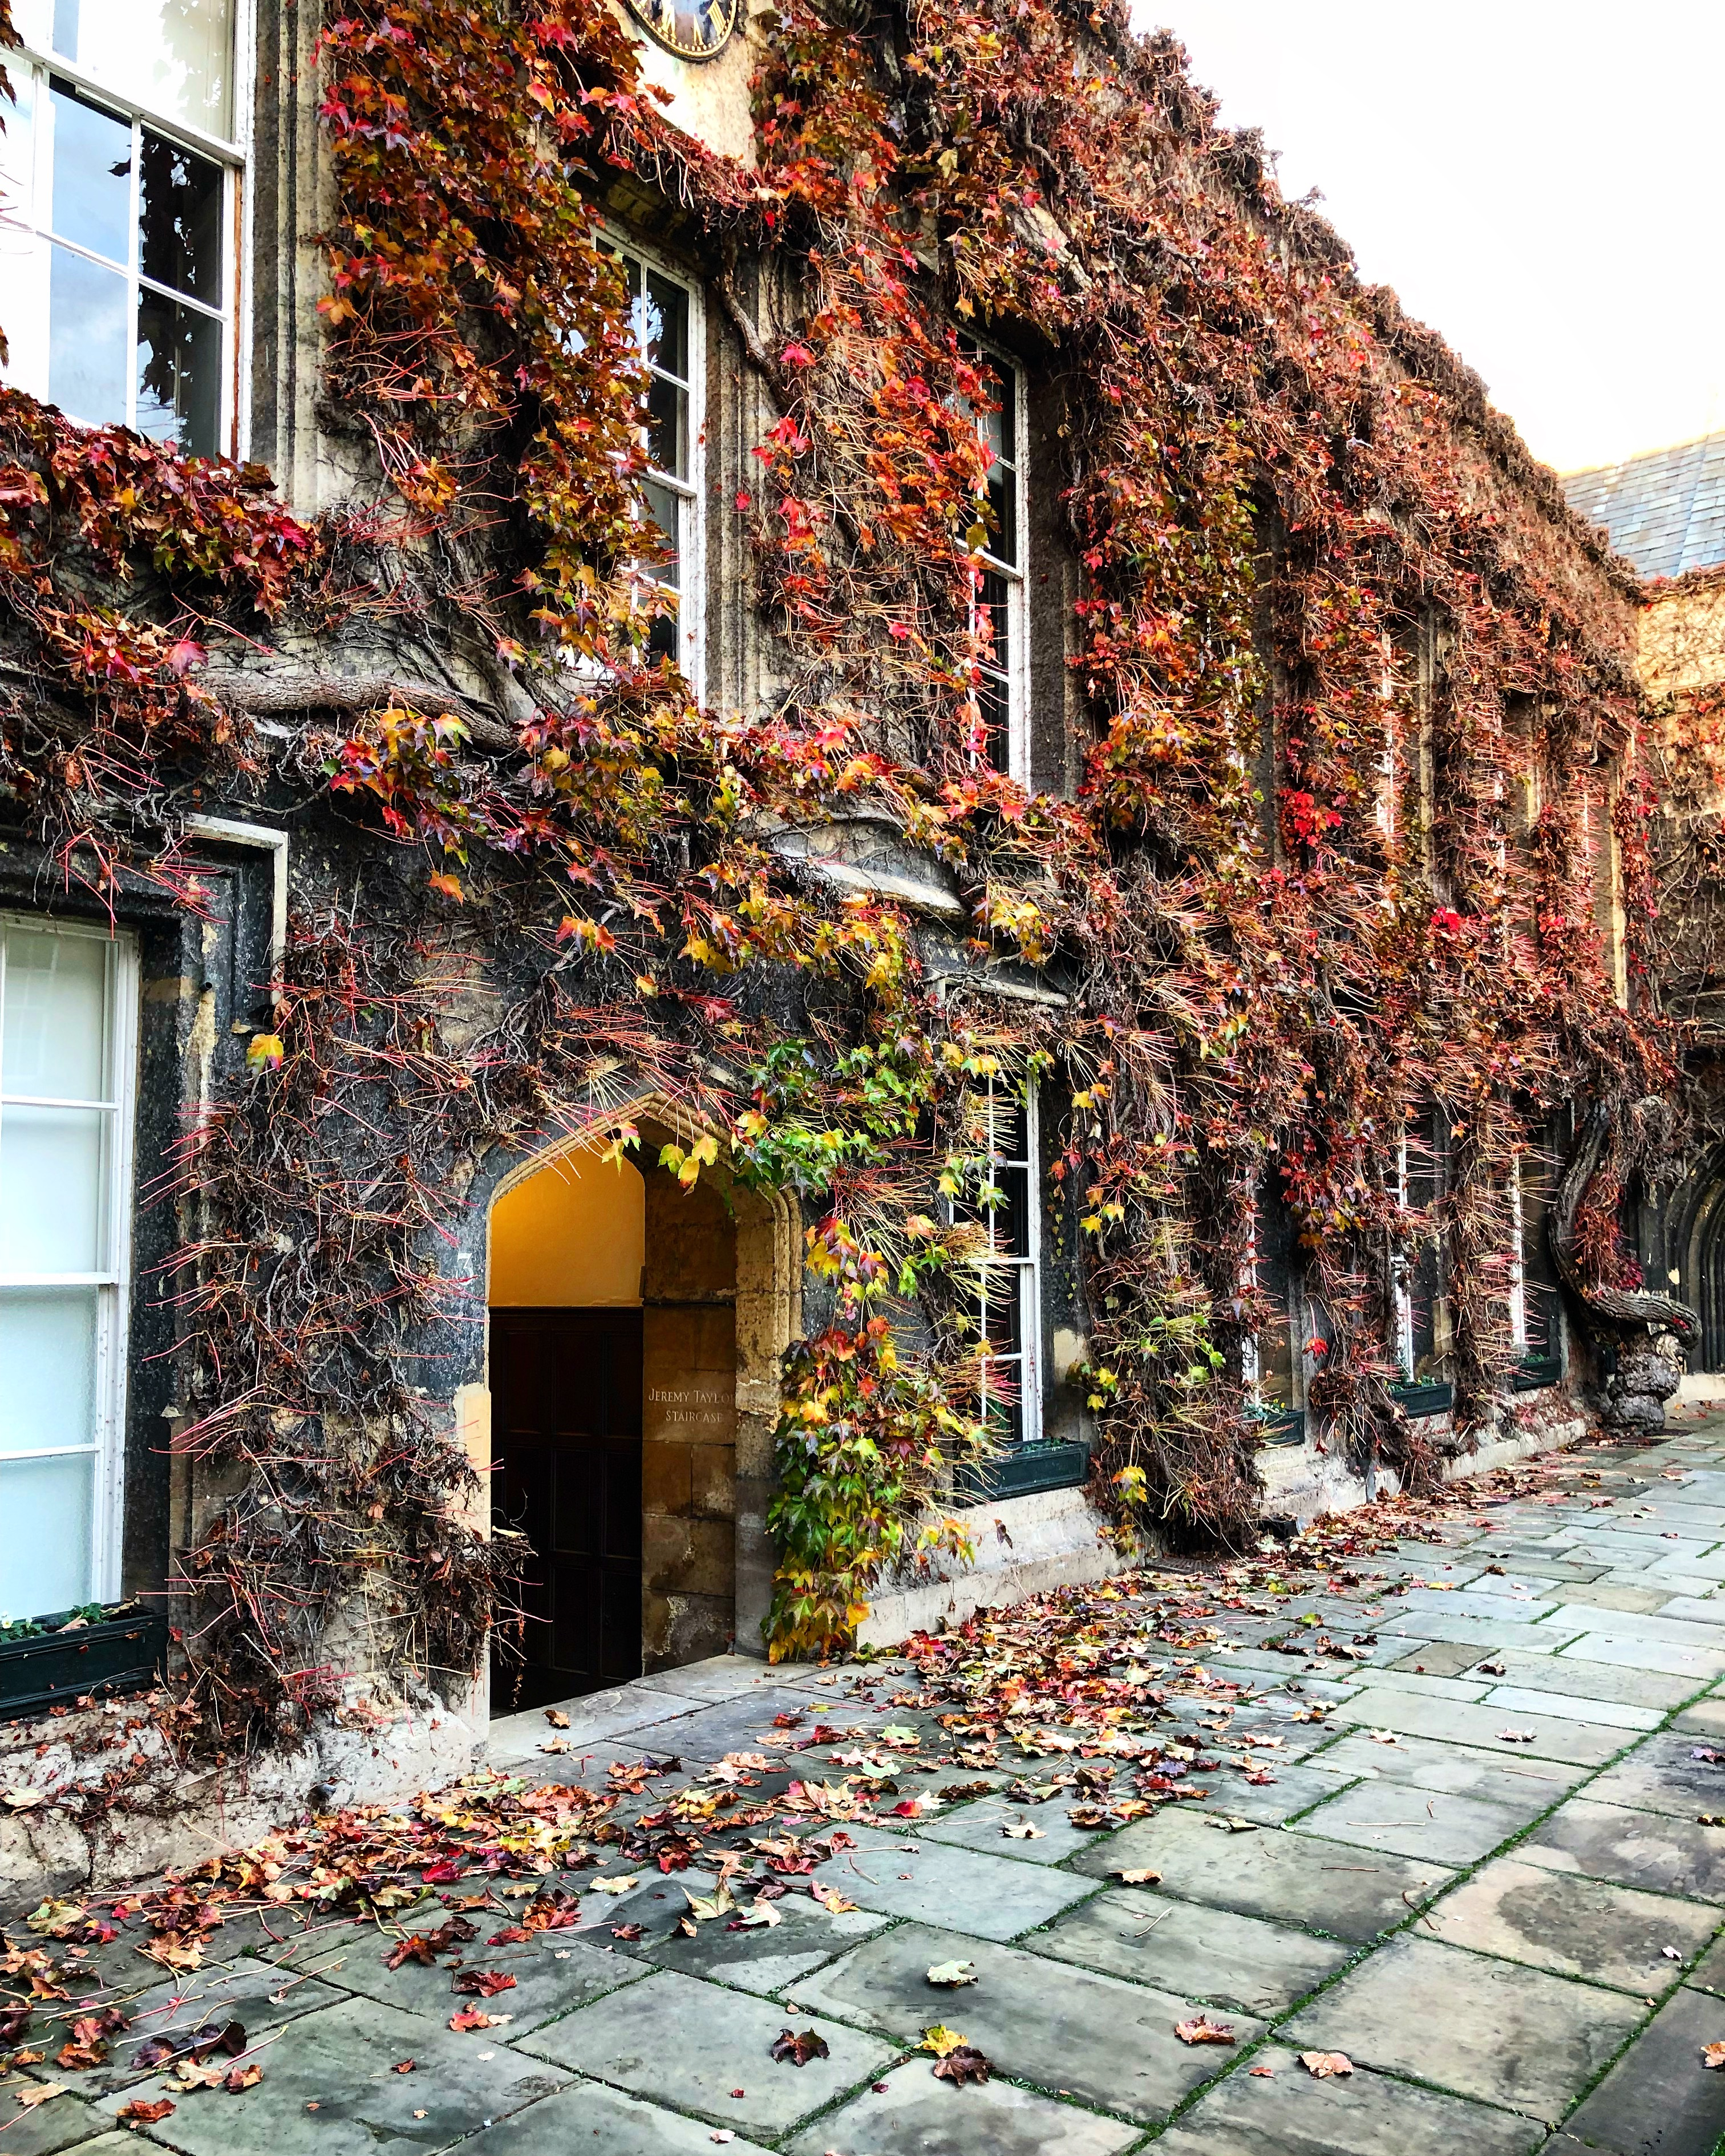 Visit the colleges of Oxford